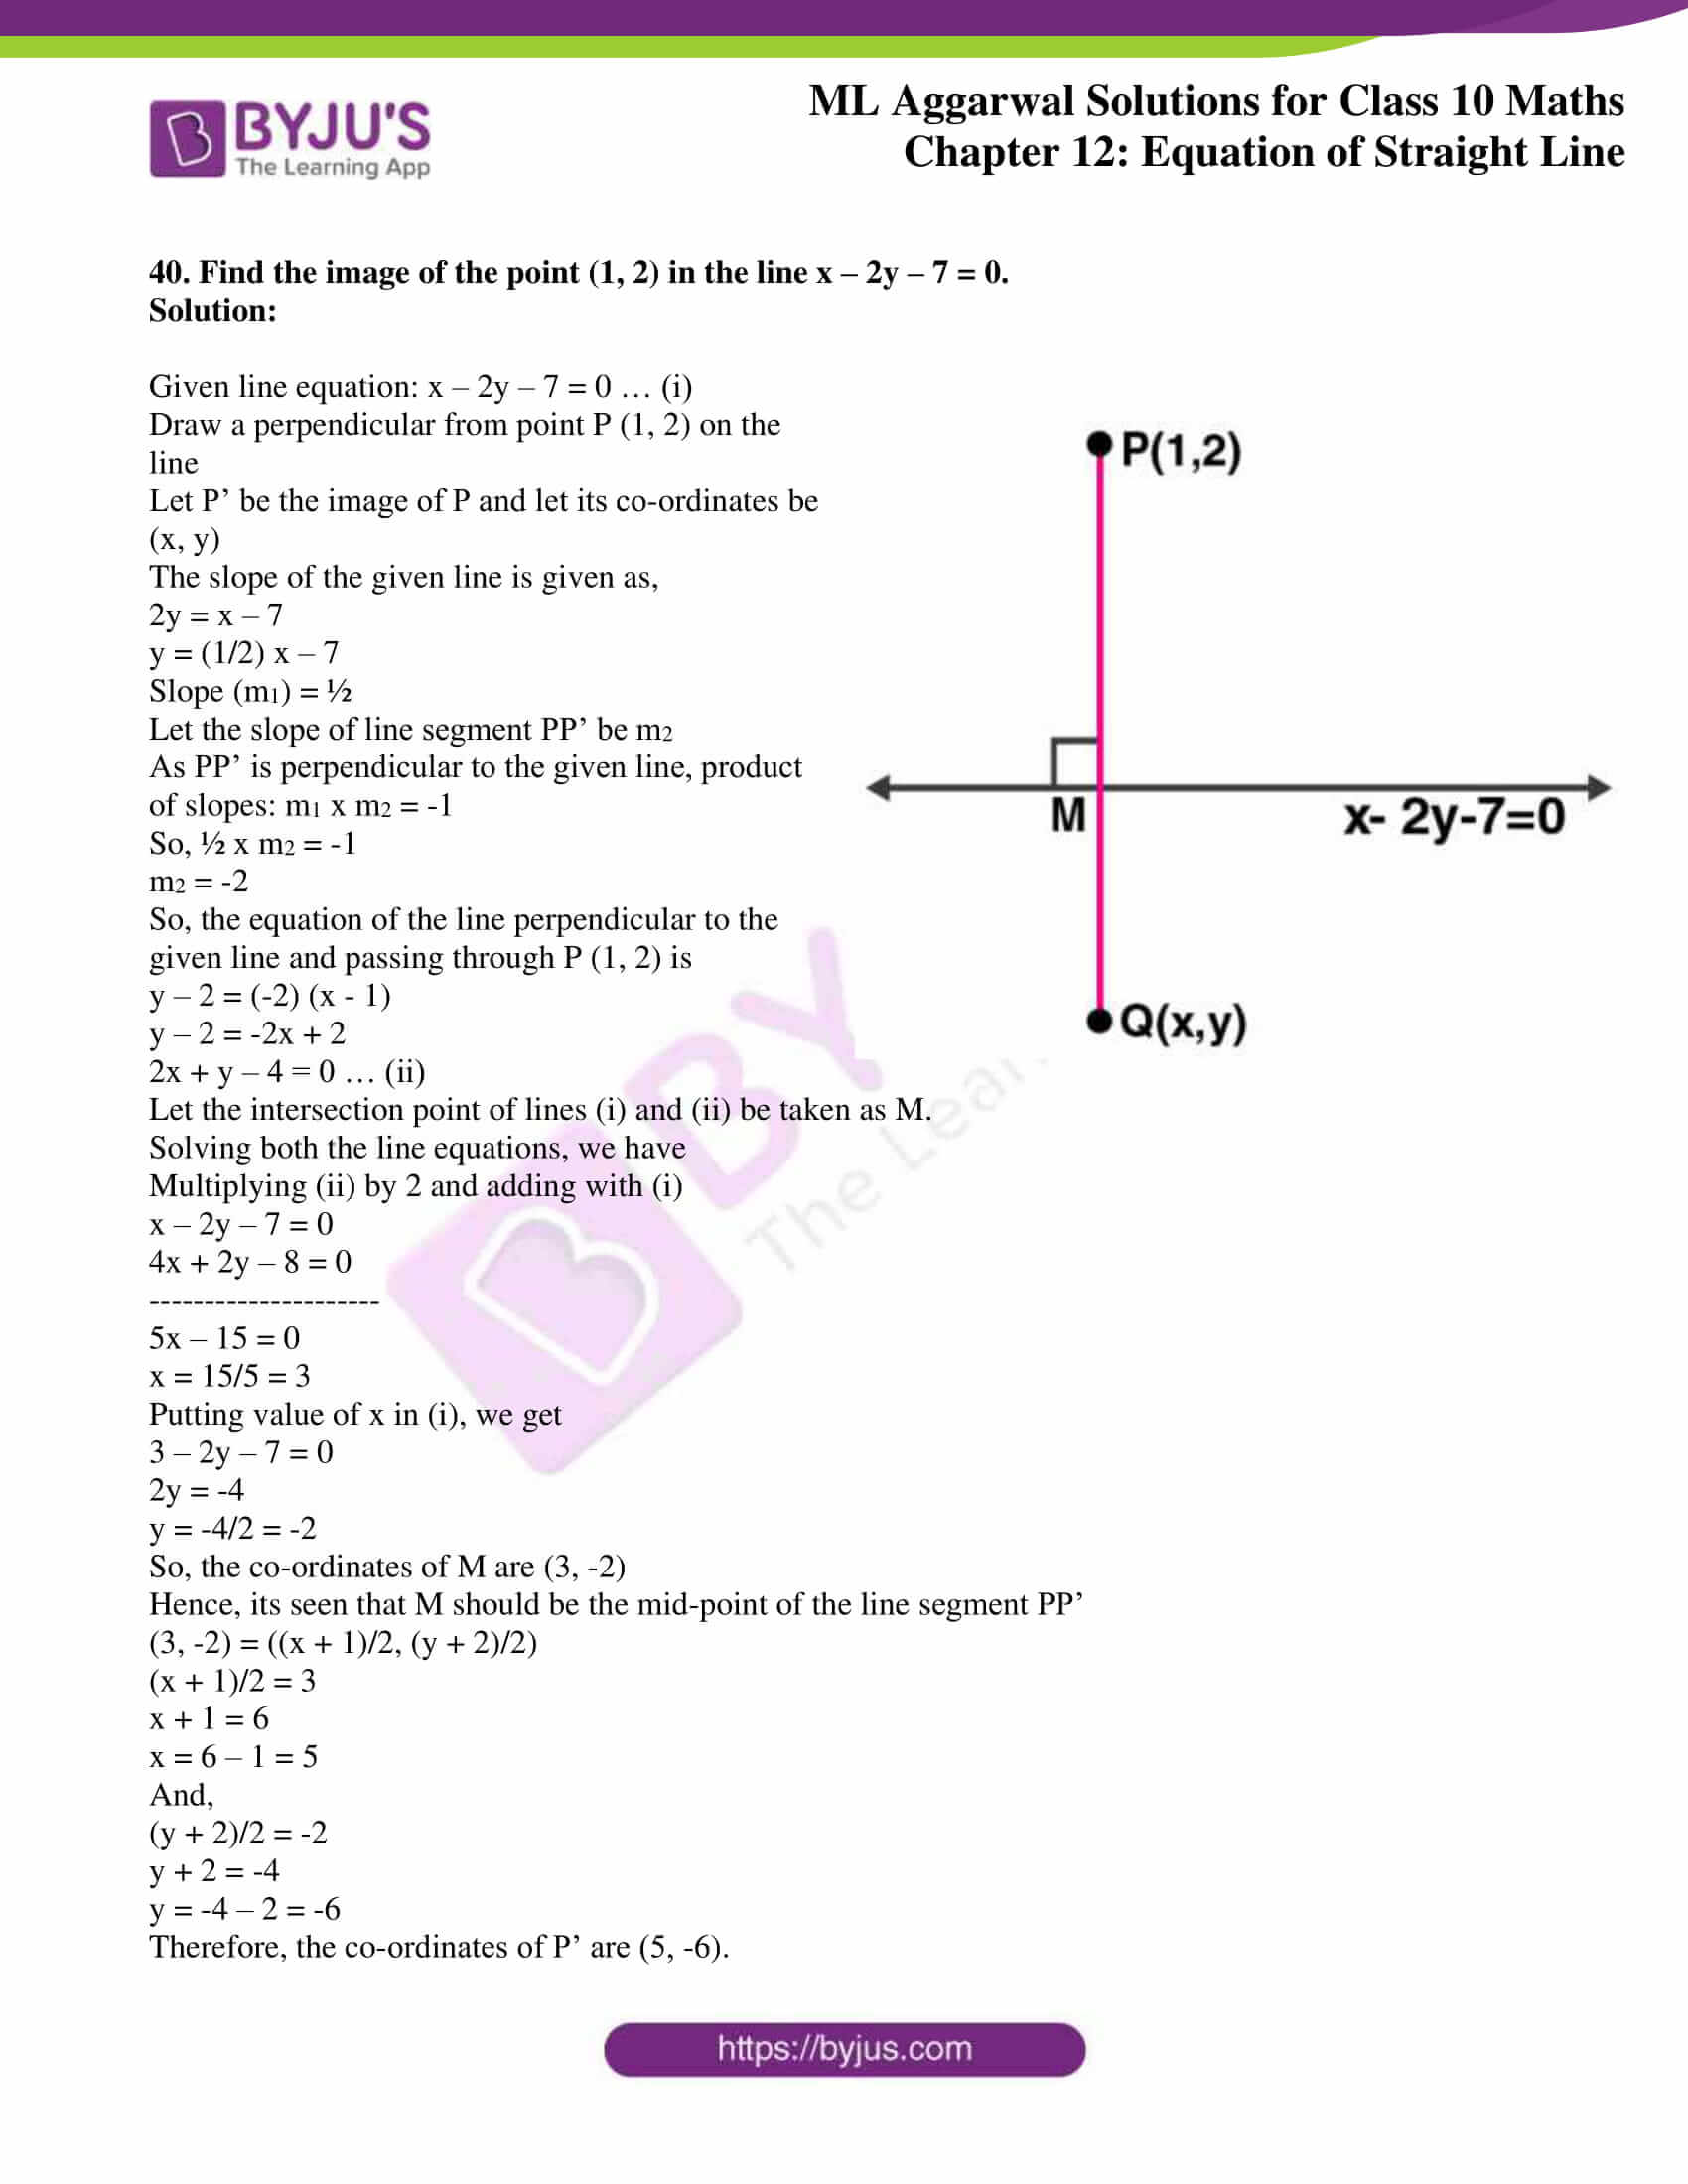 ml aggarwal solutions for class 10 maths chapter 12 33